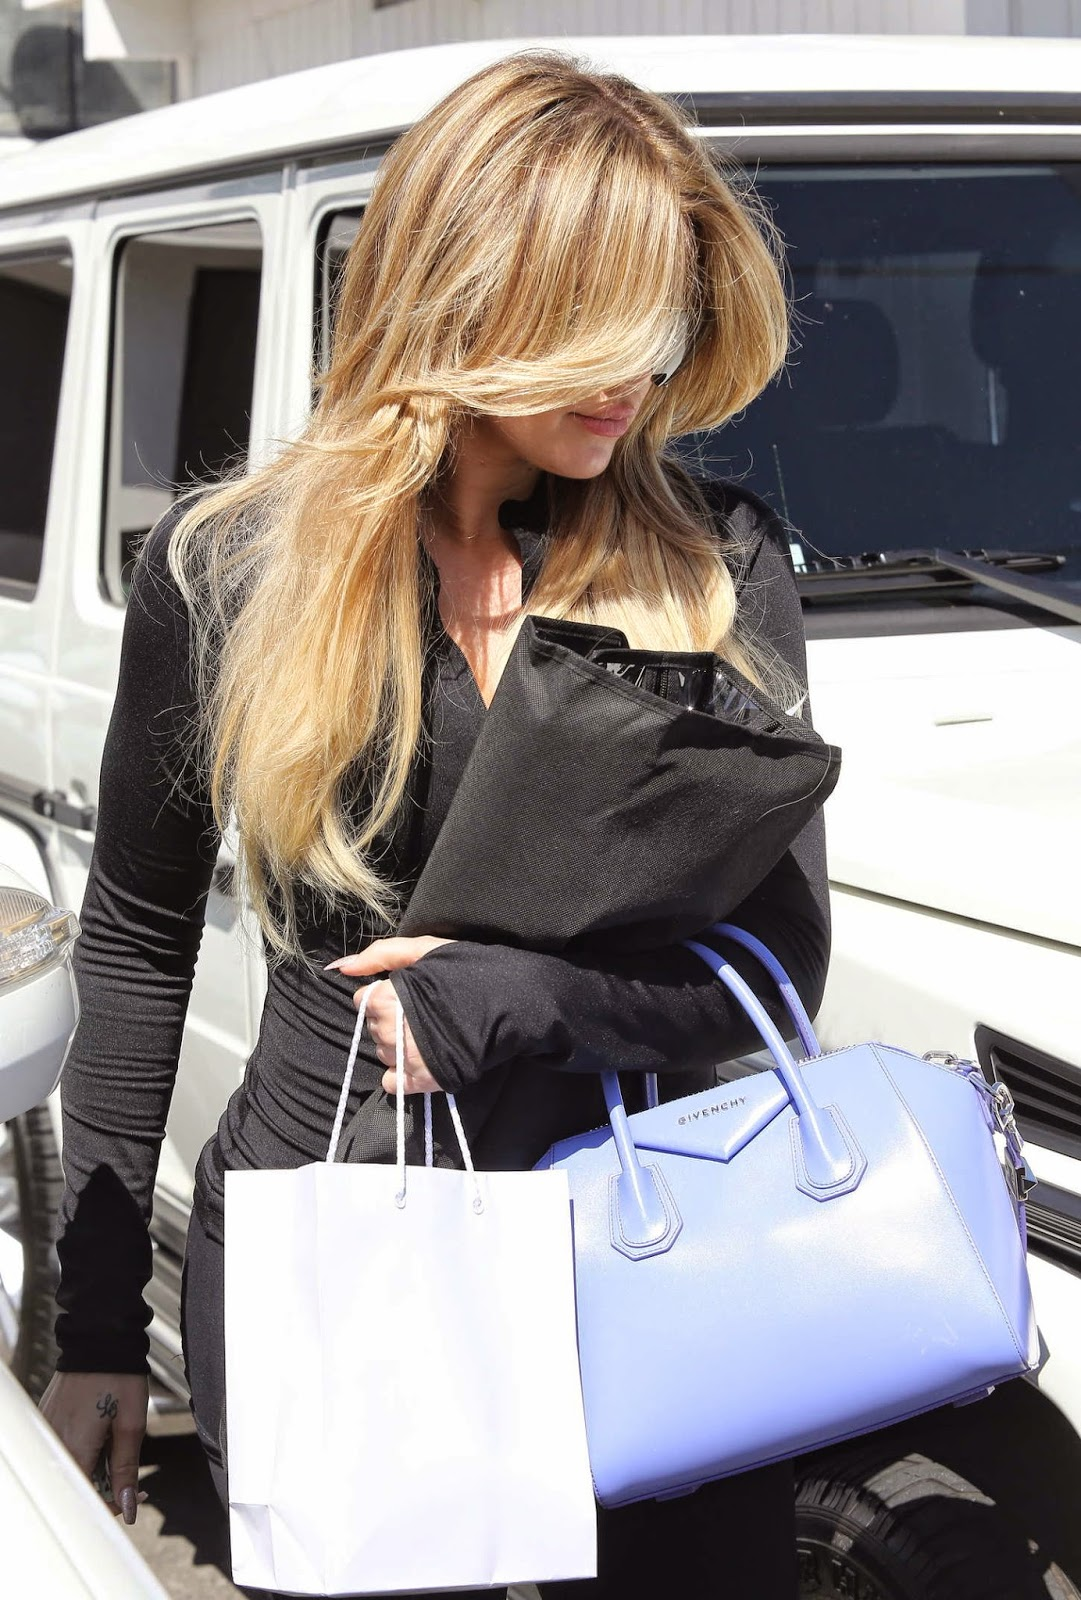 Khloe Kardashian flaunts new blonde hair in Beverly Hills